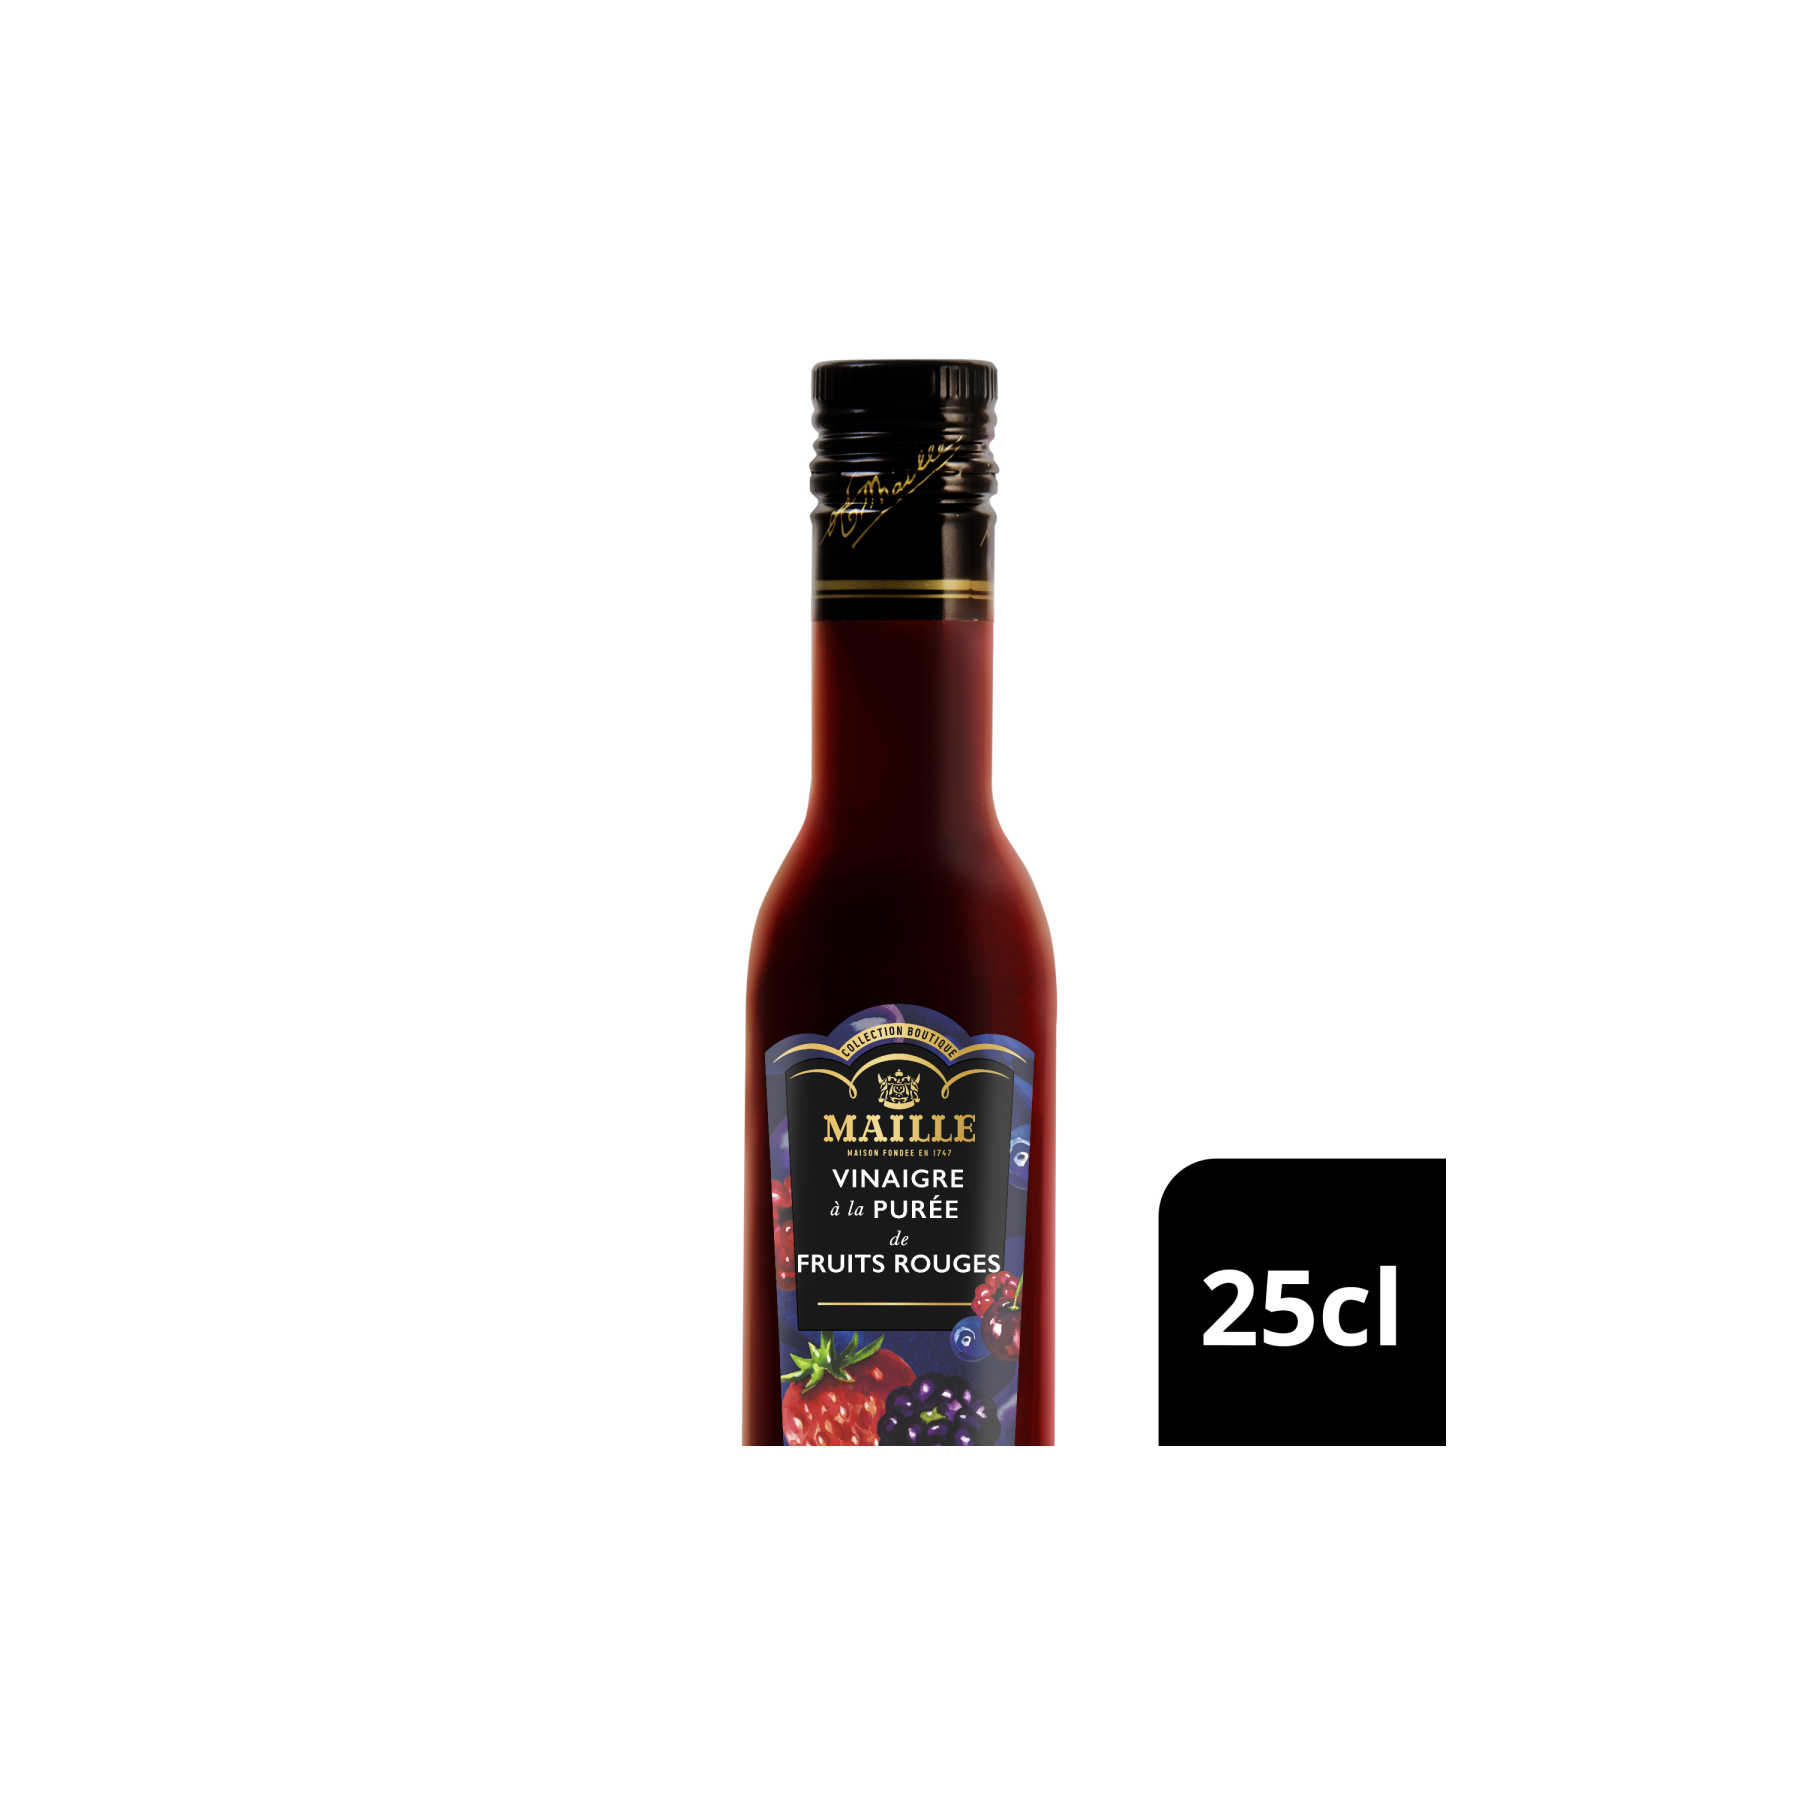 MAILLE VISUAL VINAIGRE FRUITS ROUGES 25CL HERO